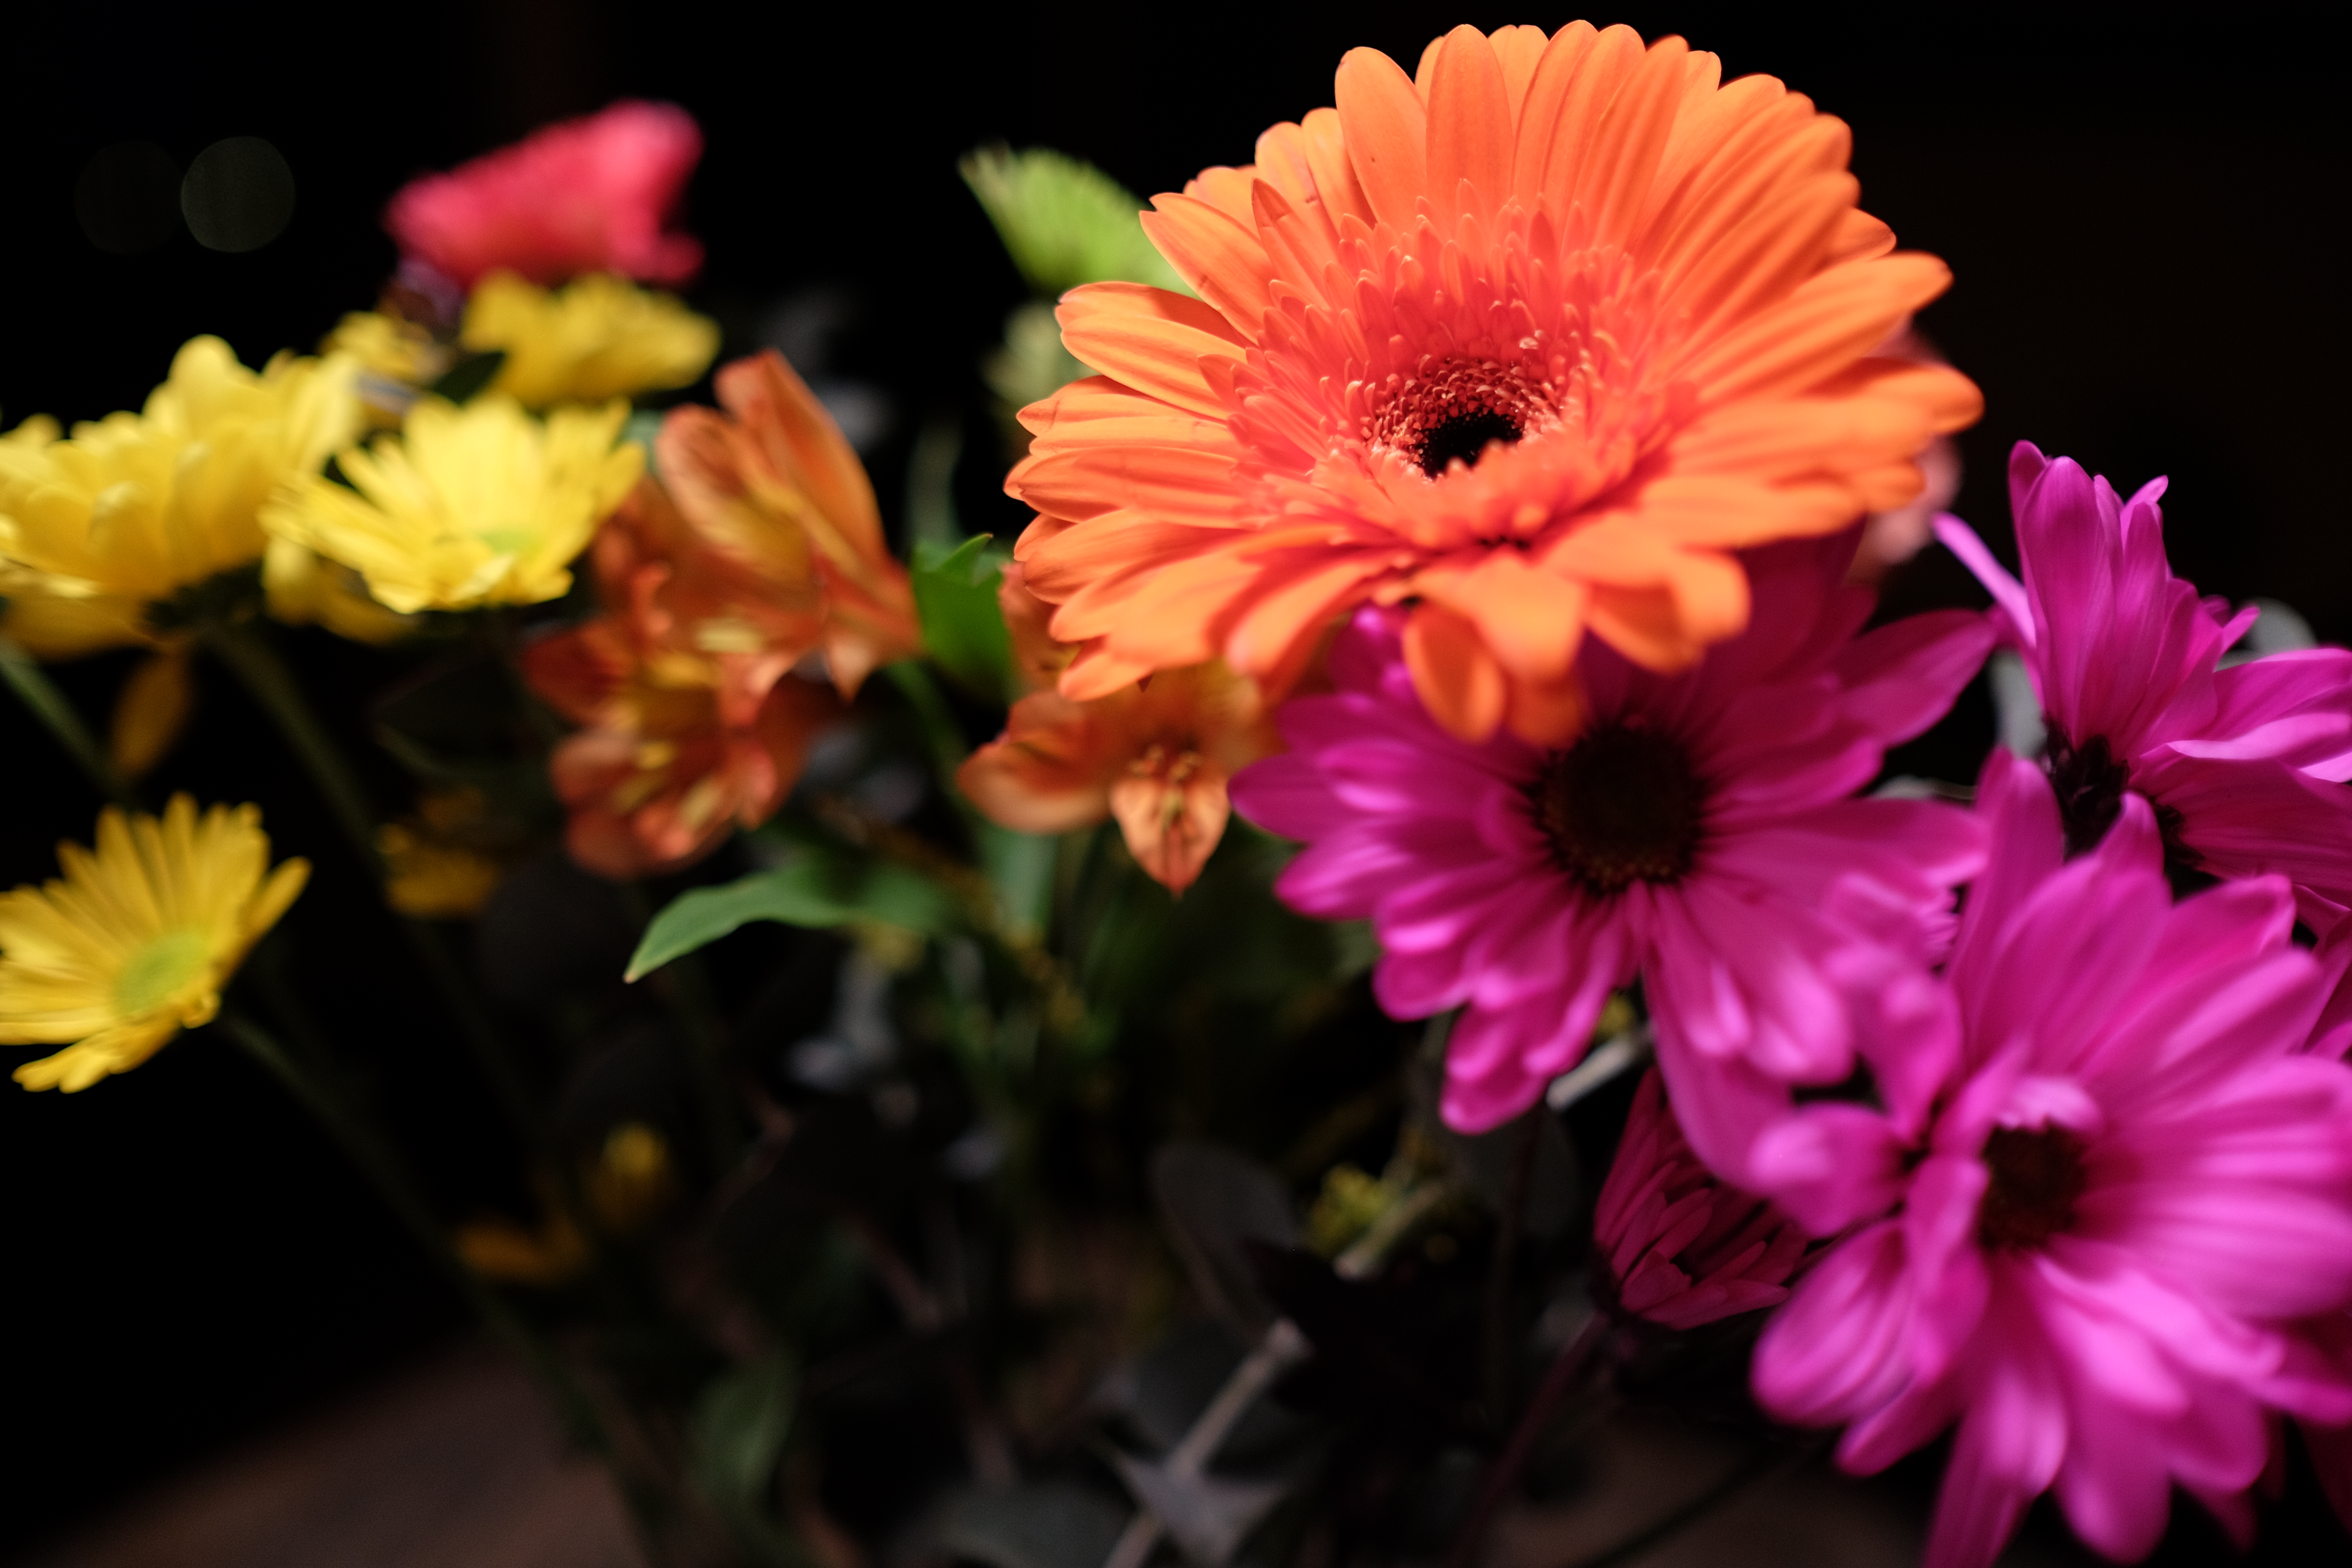 4 @ 23 Mm, 1/105, Iso 400, No Flash, Handheld - 400 Pixels Wide And 150 Pixels Tall Flowers Pic , HD Wallpaper & Backgrounds